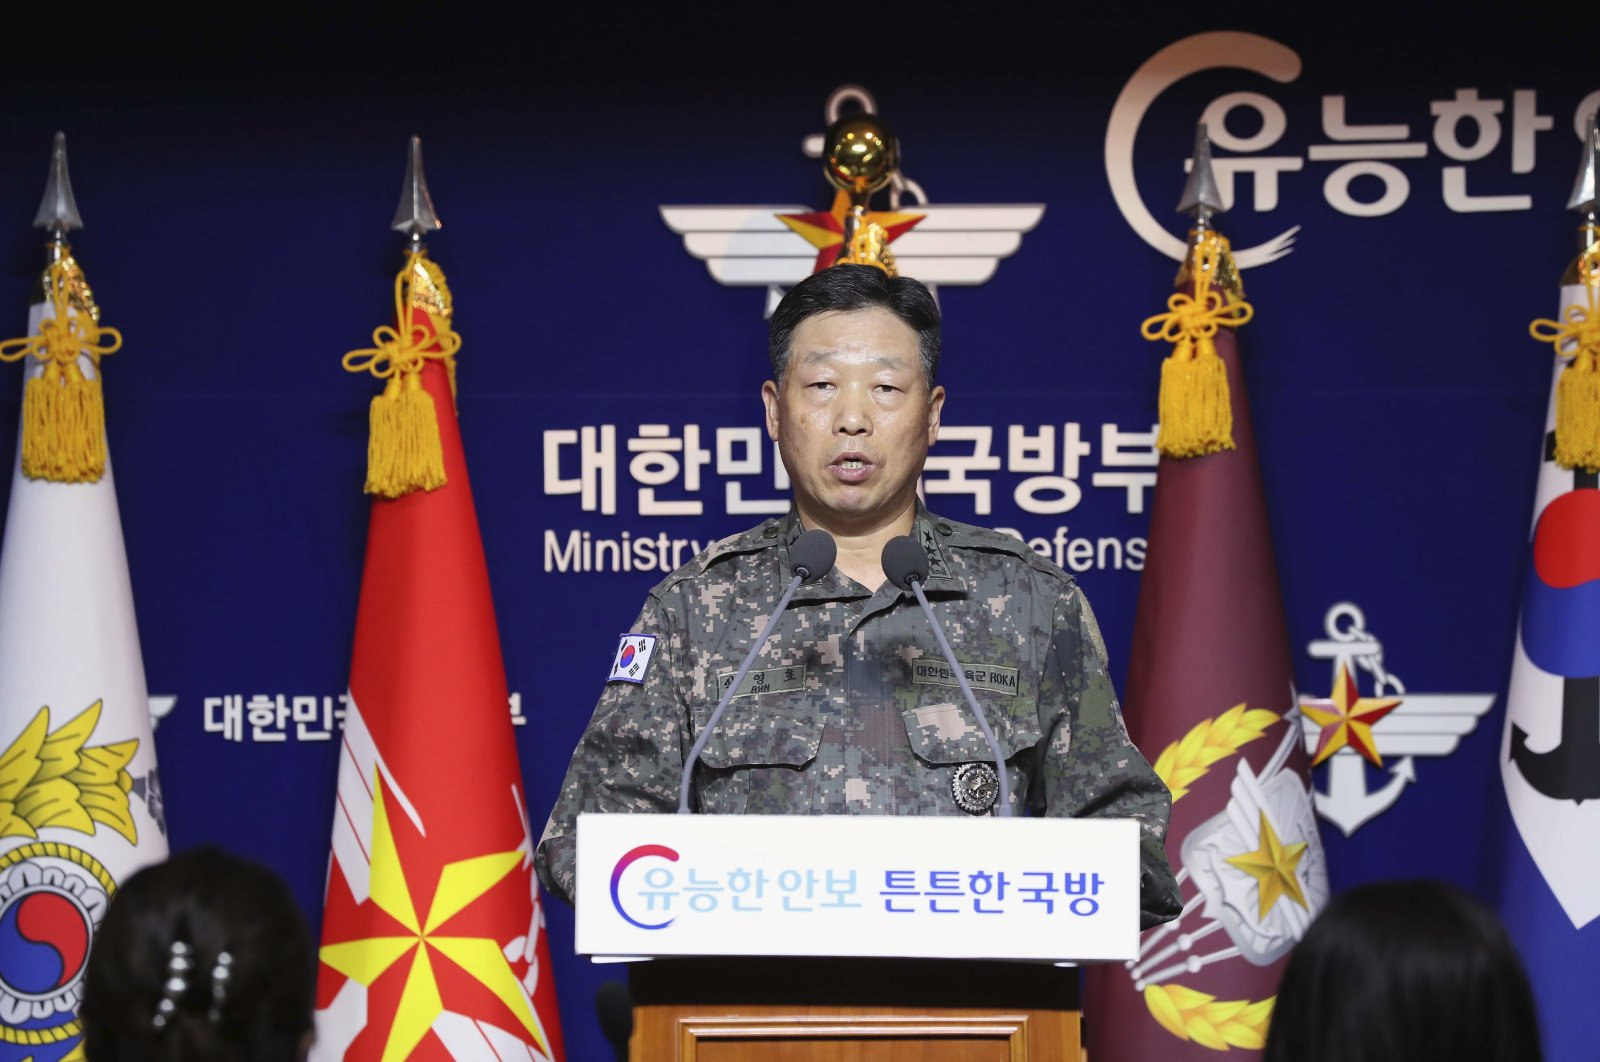 Lt. Gen. Ahn Young Ho, a top official at the South Korean military's office of the Joint Chiefs of Staff, speaks during a press conference at the Defense Ministry in Seoul, South Korea, Sept. 24, 2020. (AP Photo)